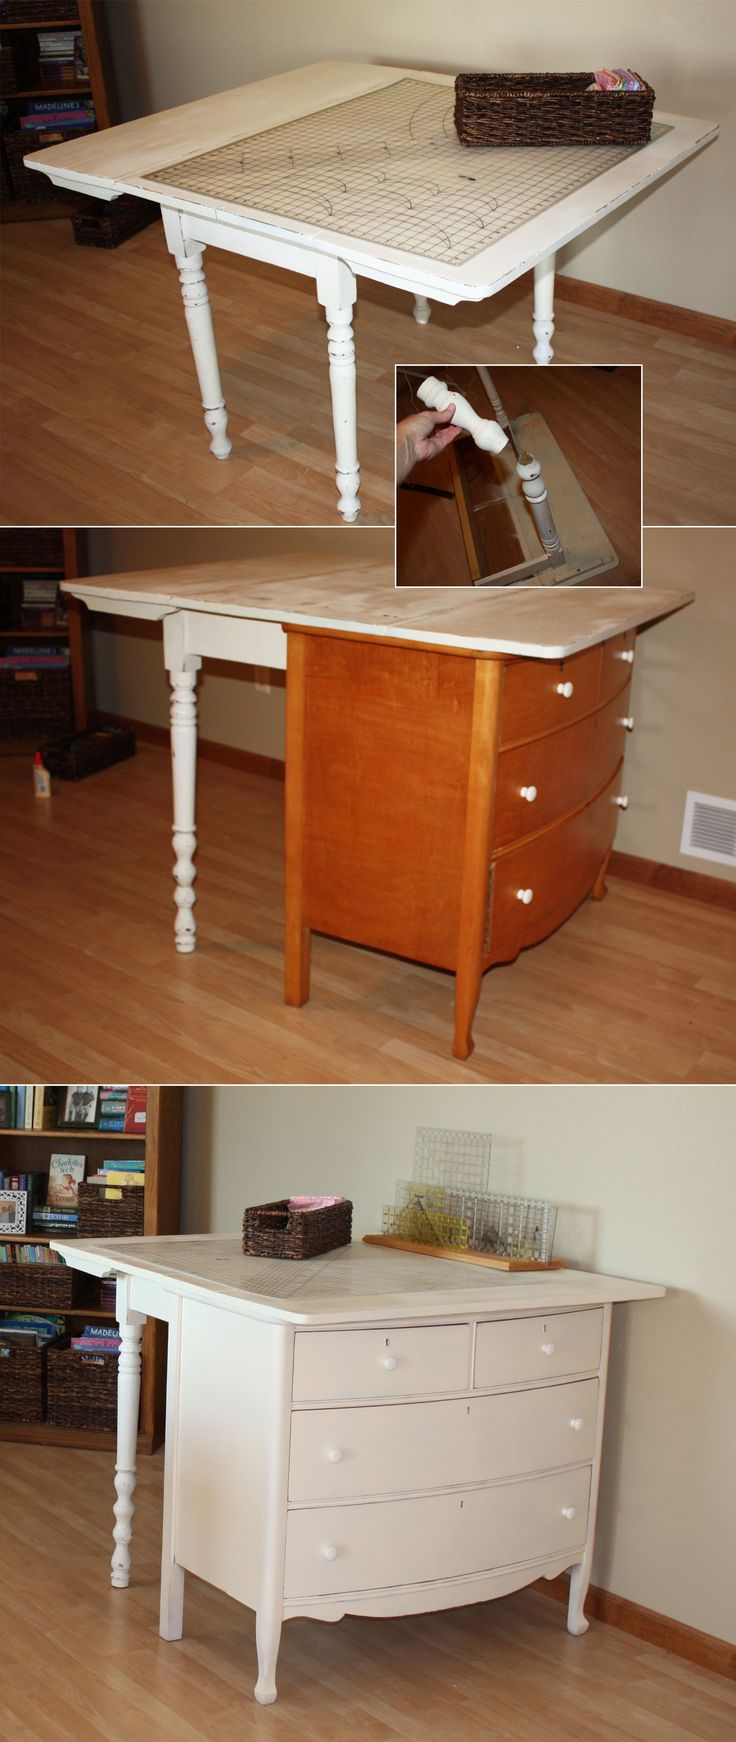 Diy cutting table - A Vintage Drop Leaf Table Was Too Short To Serve As A Fabric Cutting Station